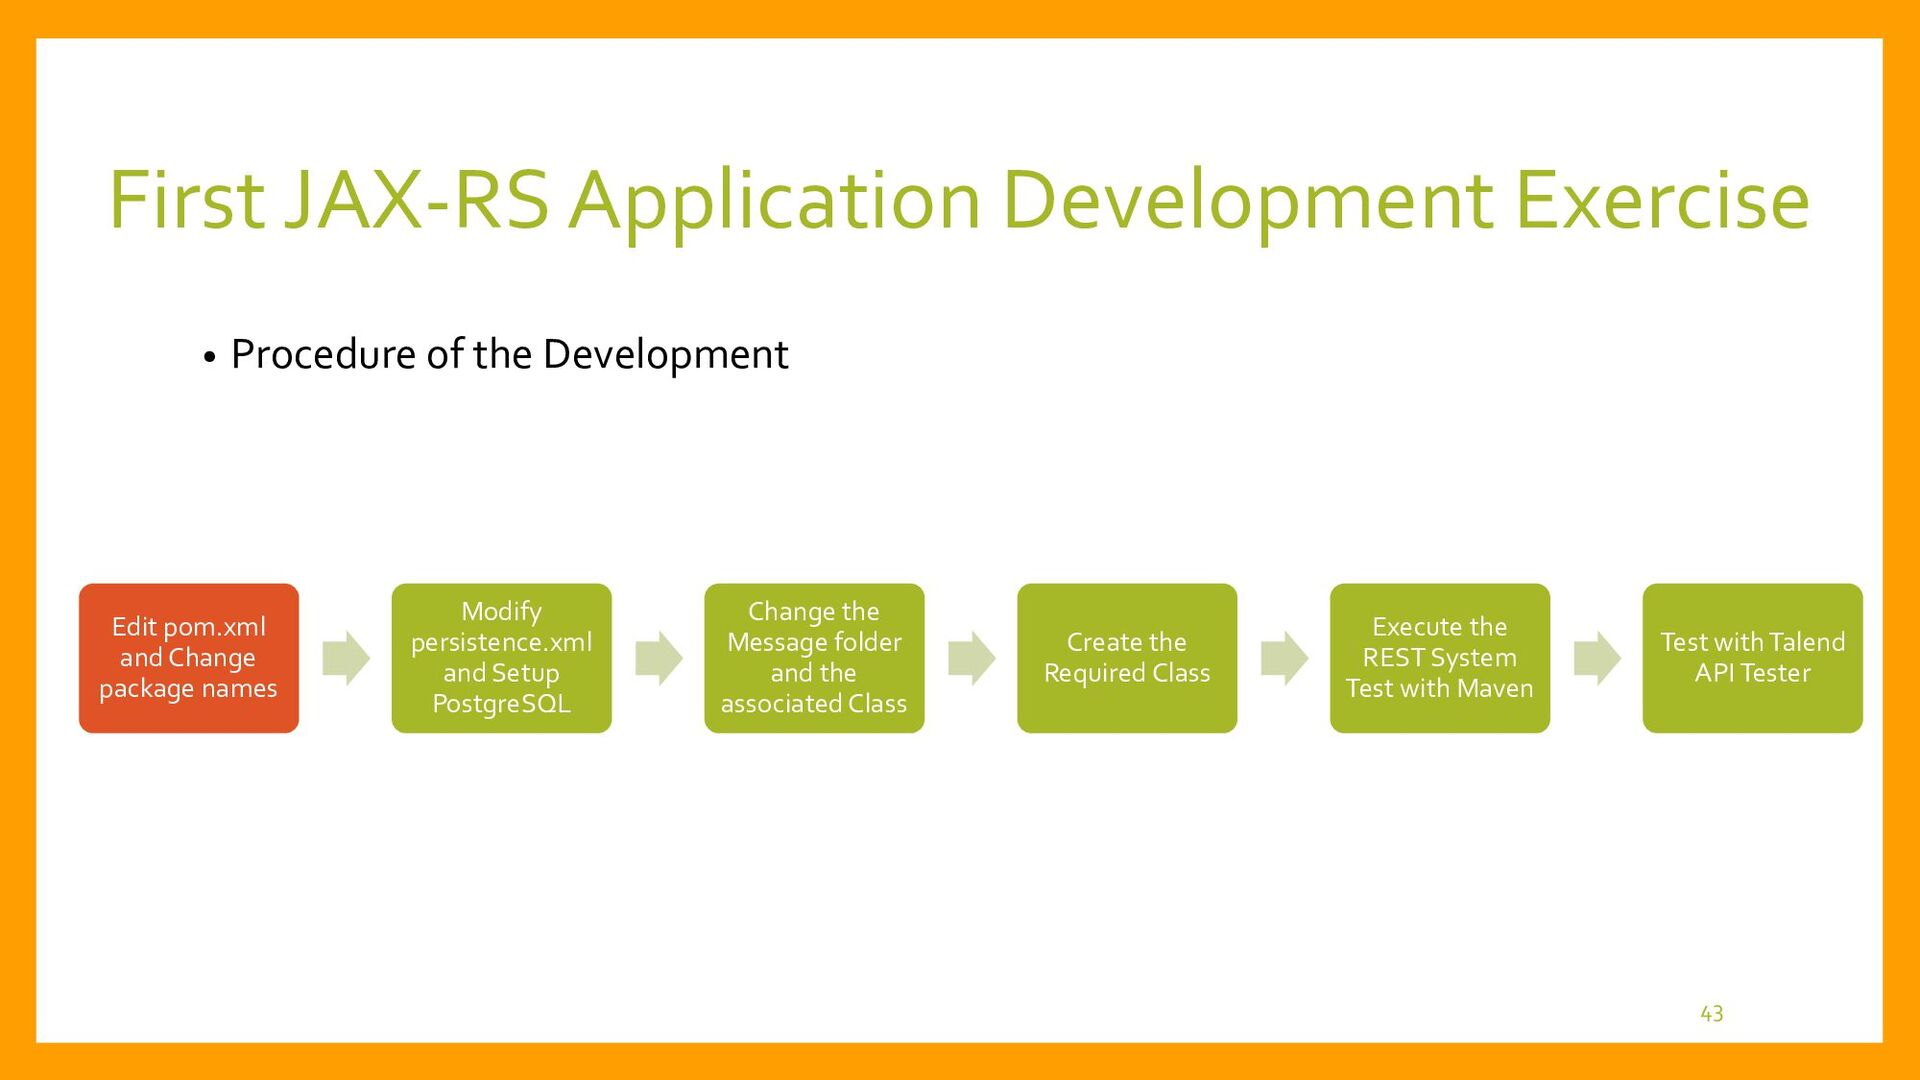 First JAX-RS Application Development • Modify t...